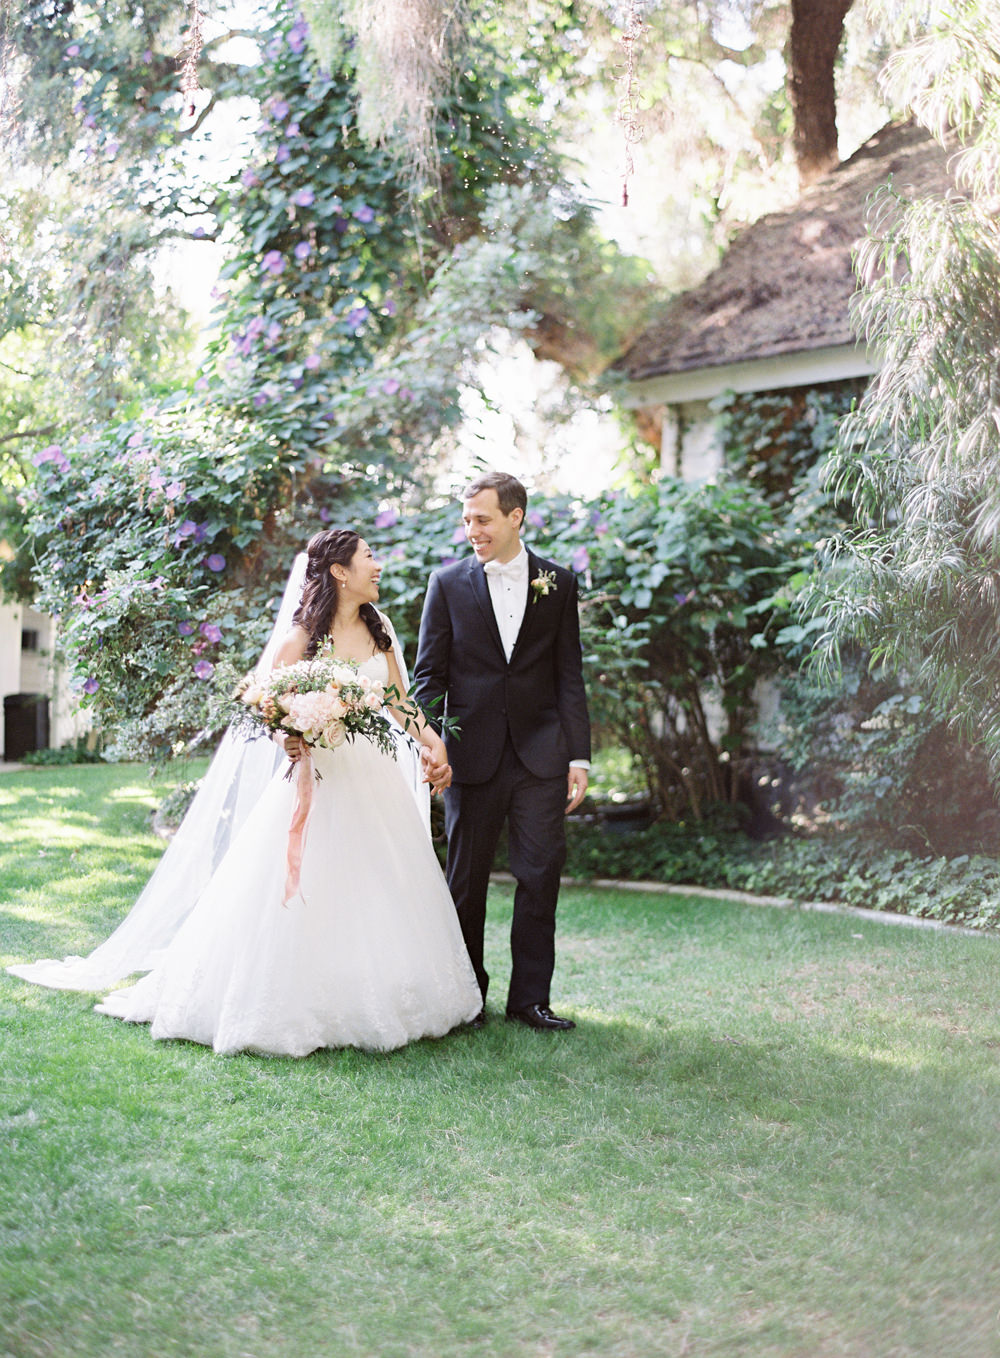 RomanticGardenWedding_WhiskersandWillow_090.jpg